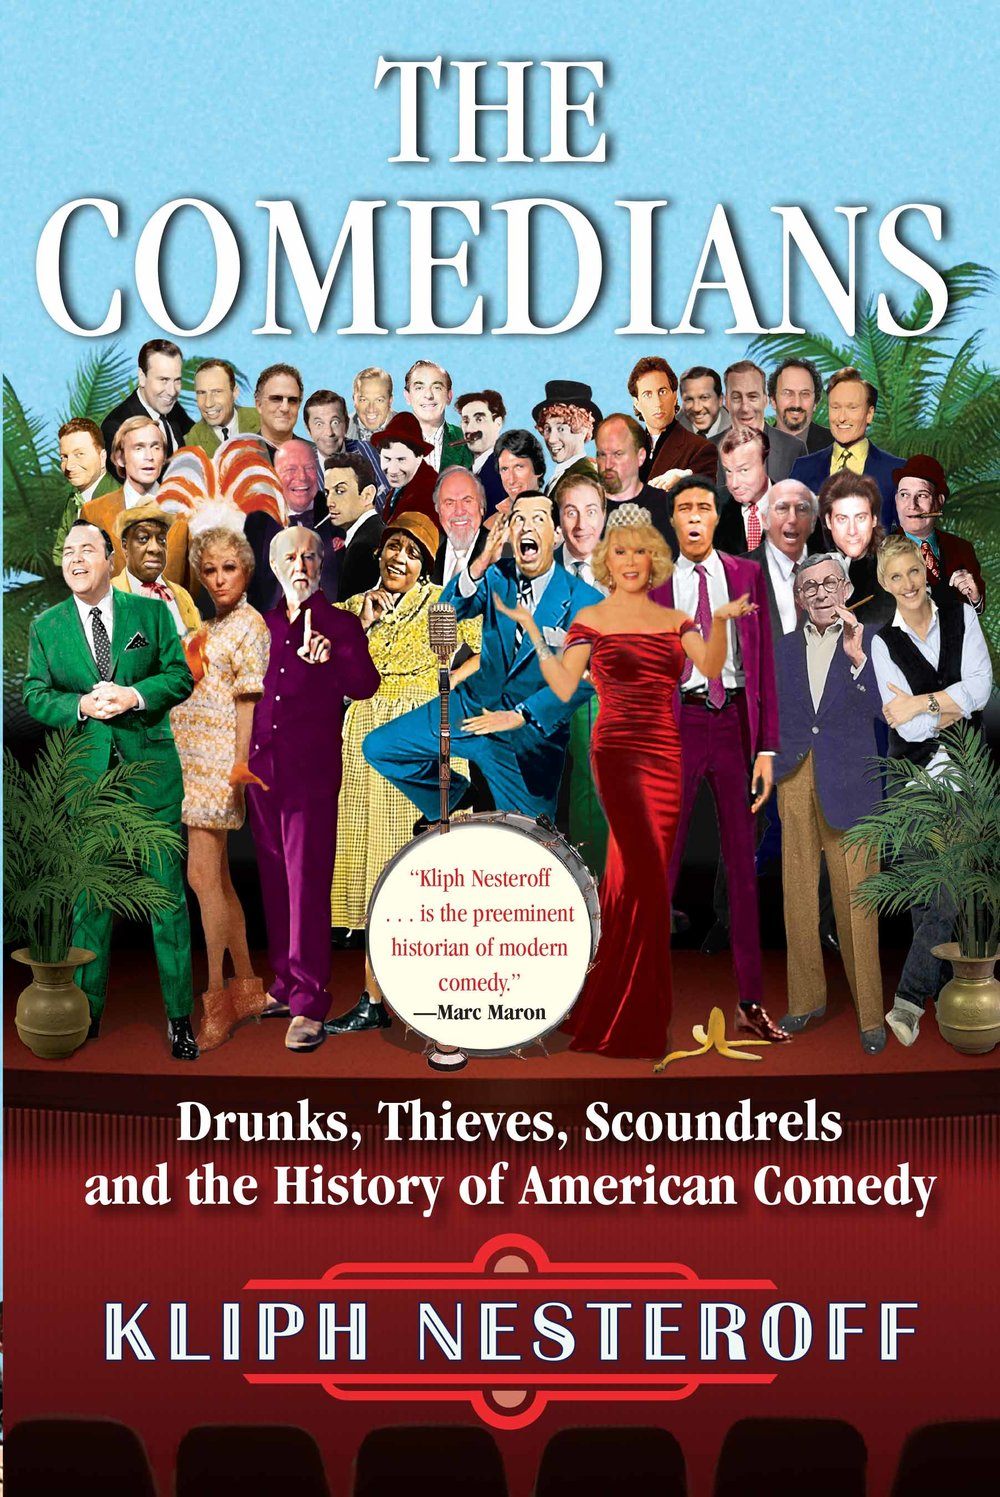 The Comedians, Kliph Nesteroff  - I think you'd enjoy this book even if you don't identify as comedian.Mr. Nesteroff produces a salient story of the history of American comedy from the Vaudeville days to radio, through the early nightclubs (think the Copacabana), to Las Vegas and to today.He merges firsthand interviews with historical sources and comes out with a story that, I hope, gives you an informed perspective on comedy's roots. That all sounds terribly dry. But it's not. It's entertaining! [Which I never thought I'd say about a history book.]